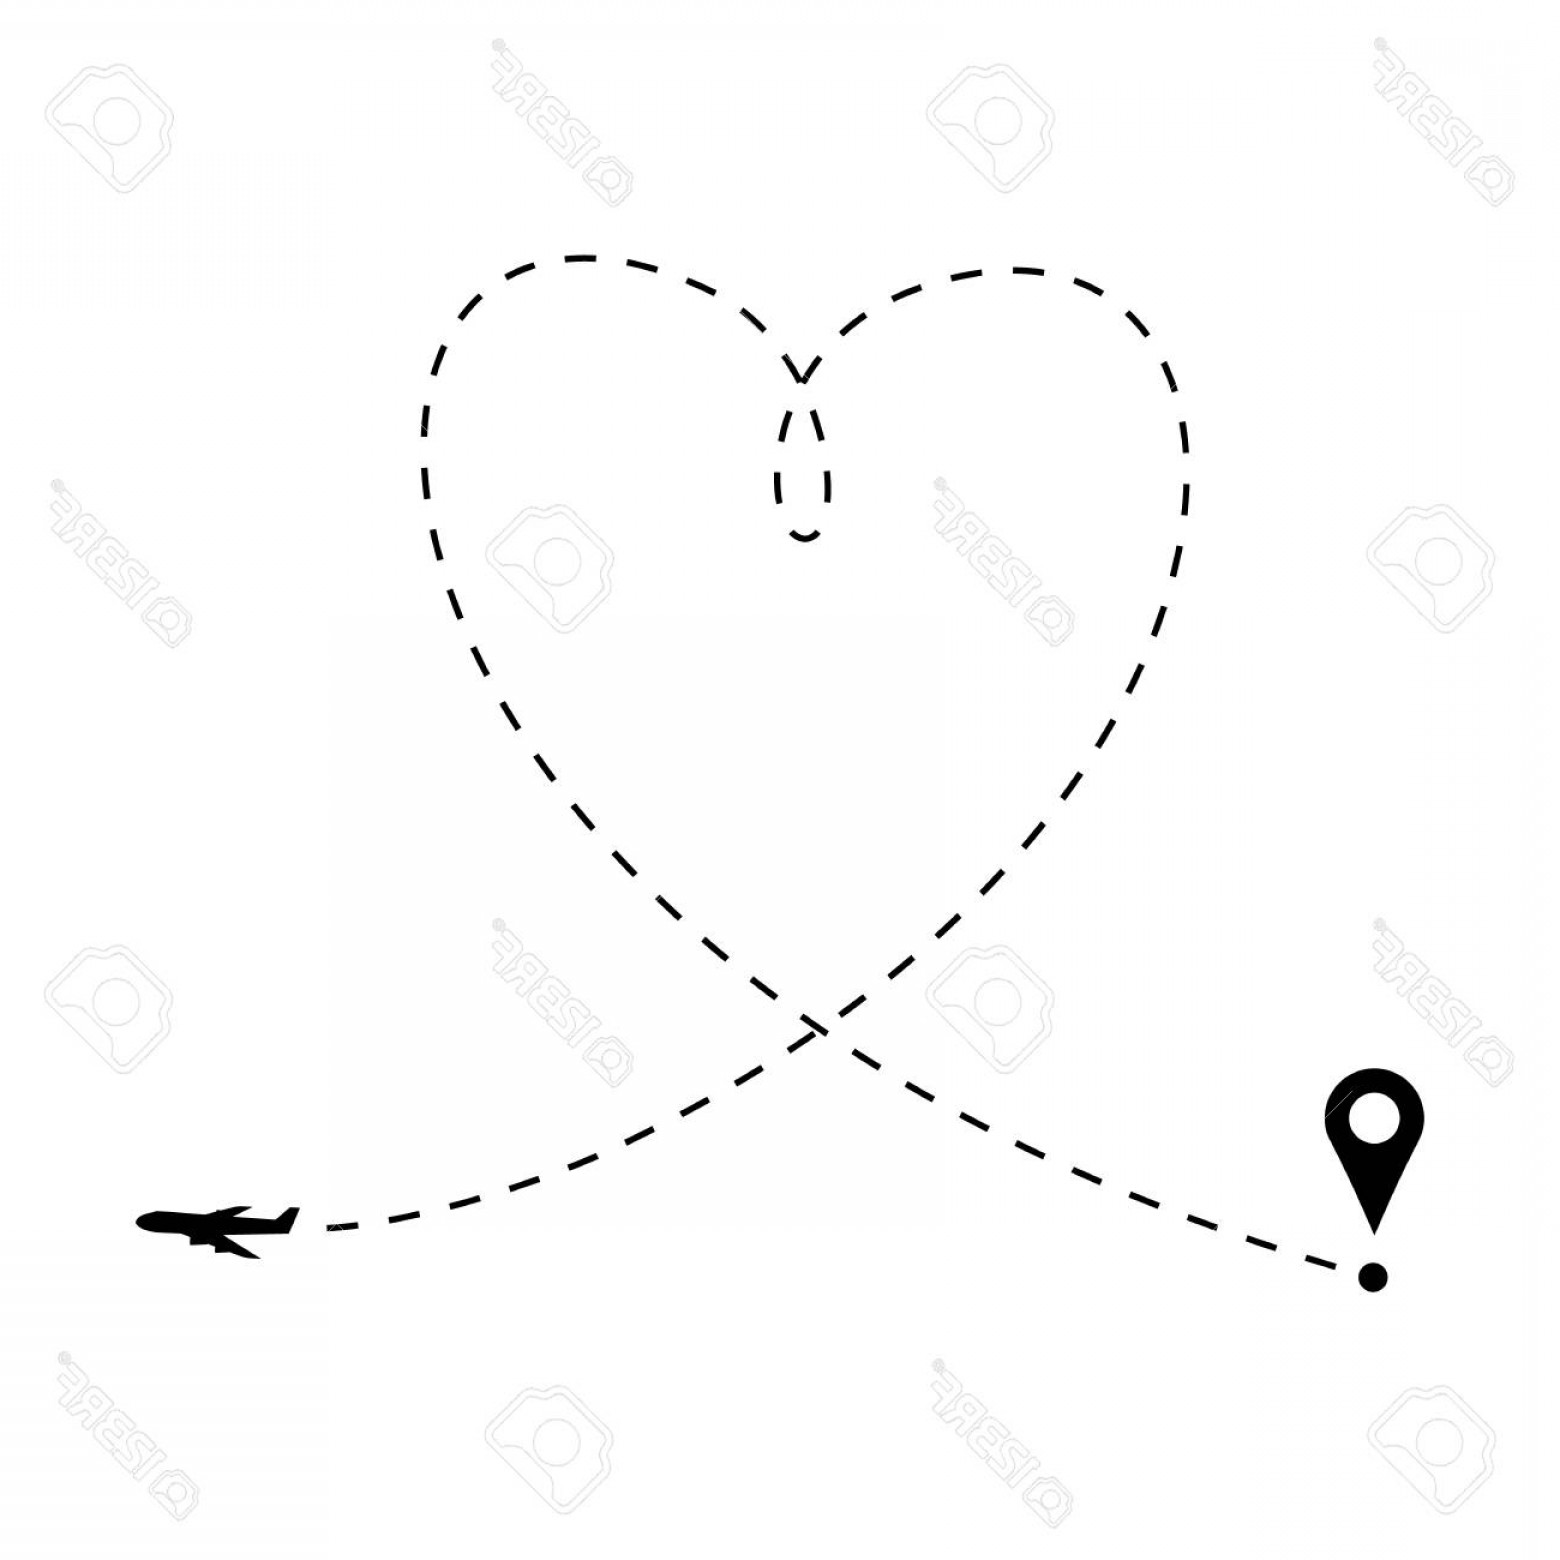 Black Heart And Plane Vector: Photostock Vector Love Is In The Air Concept Plane And Heart Shaped Path